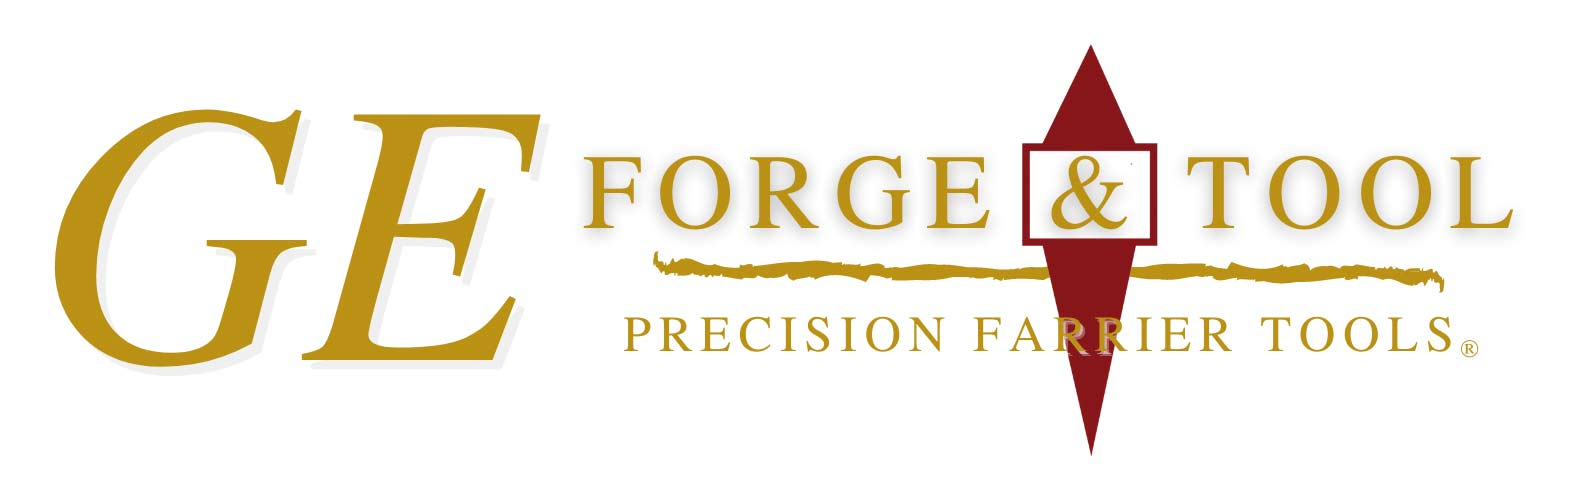 GE Forge